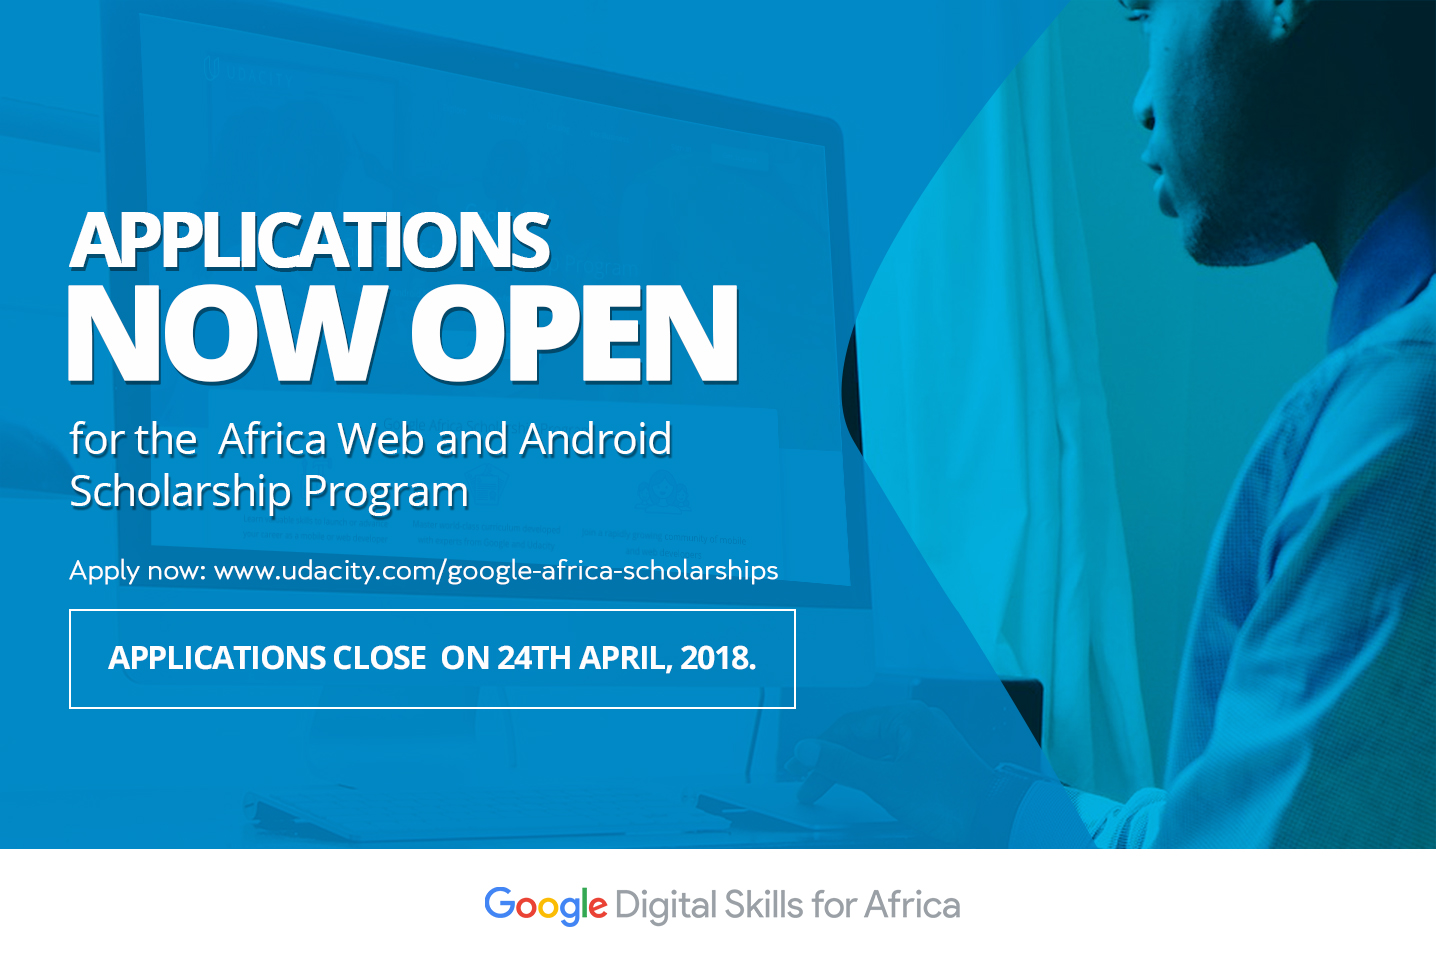 - application 2Bblog2 - Google Developers Blog: Funding 15,000 web and android scholarship in Africa